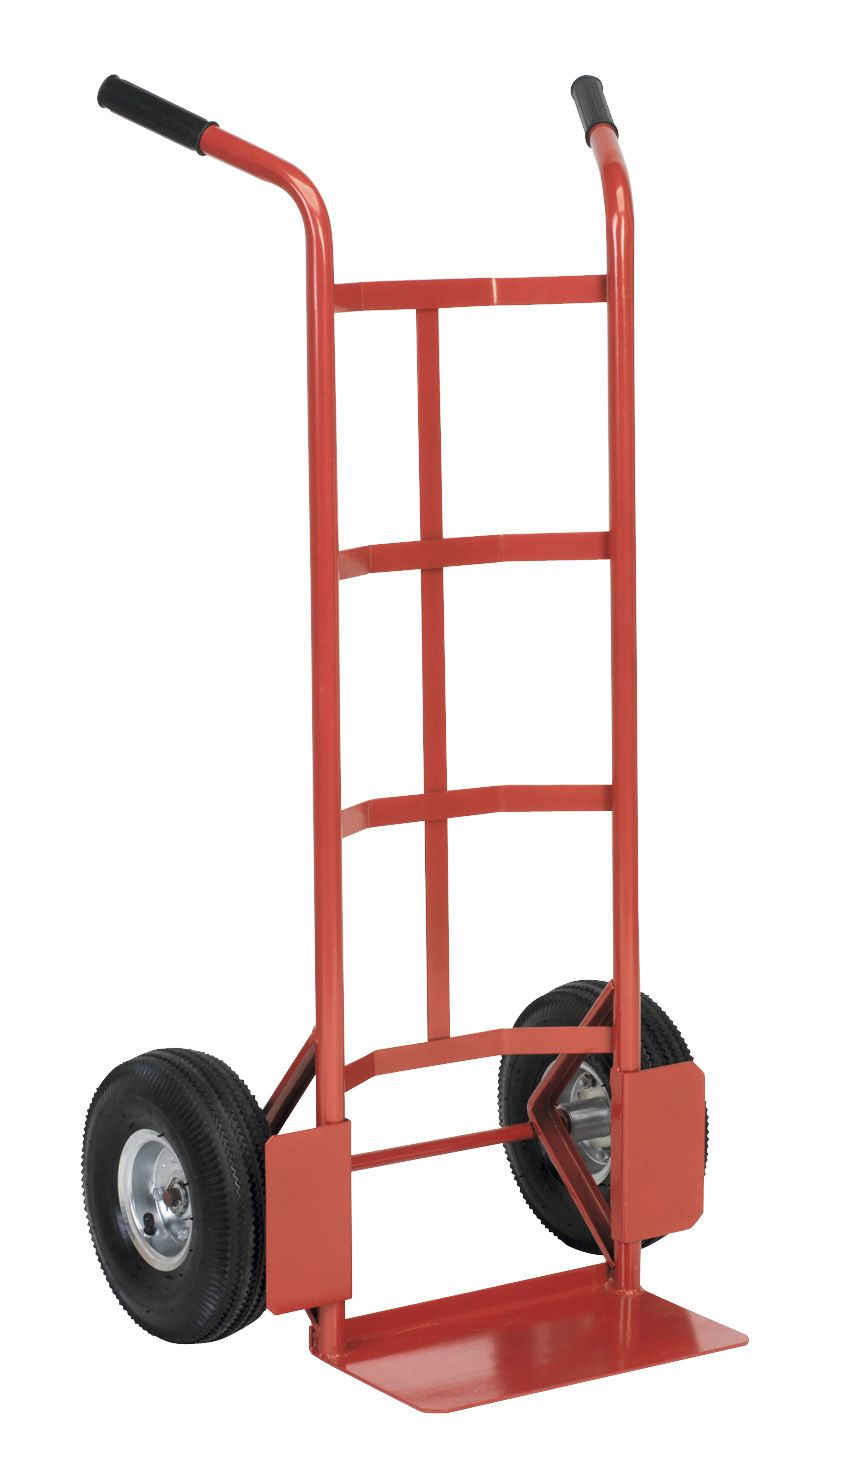 Sealey Sack Truck with Pneumatic Tyres 200kg Capacity